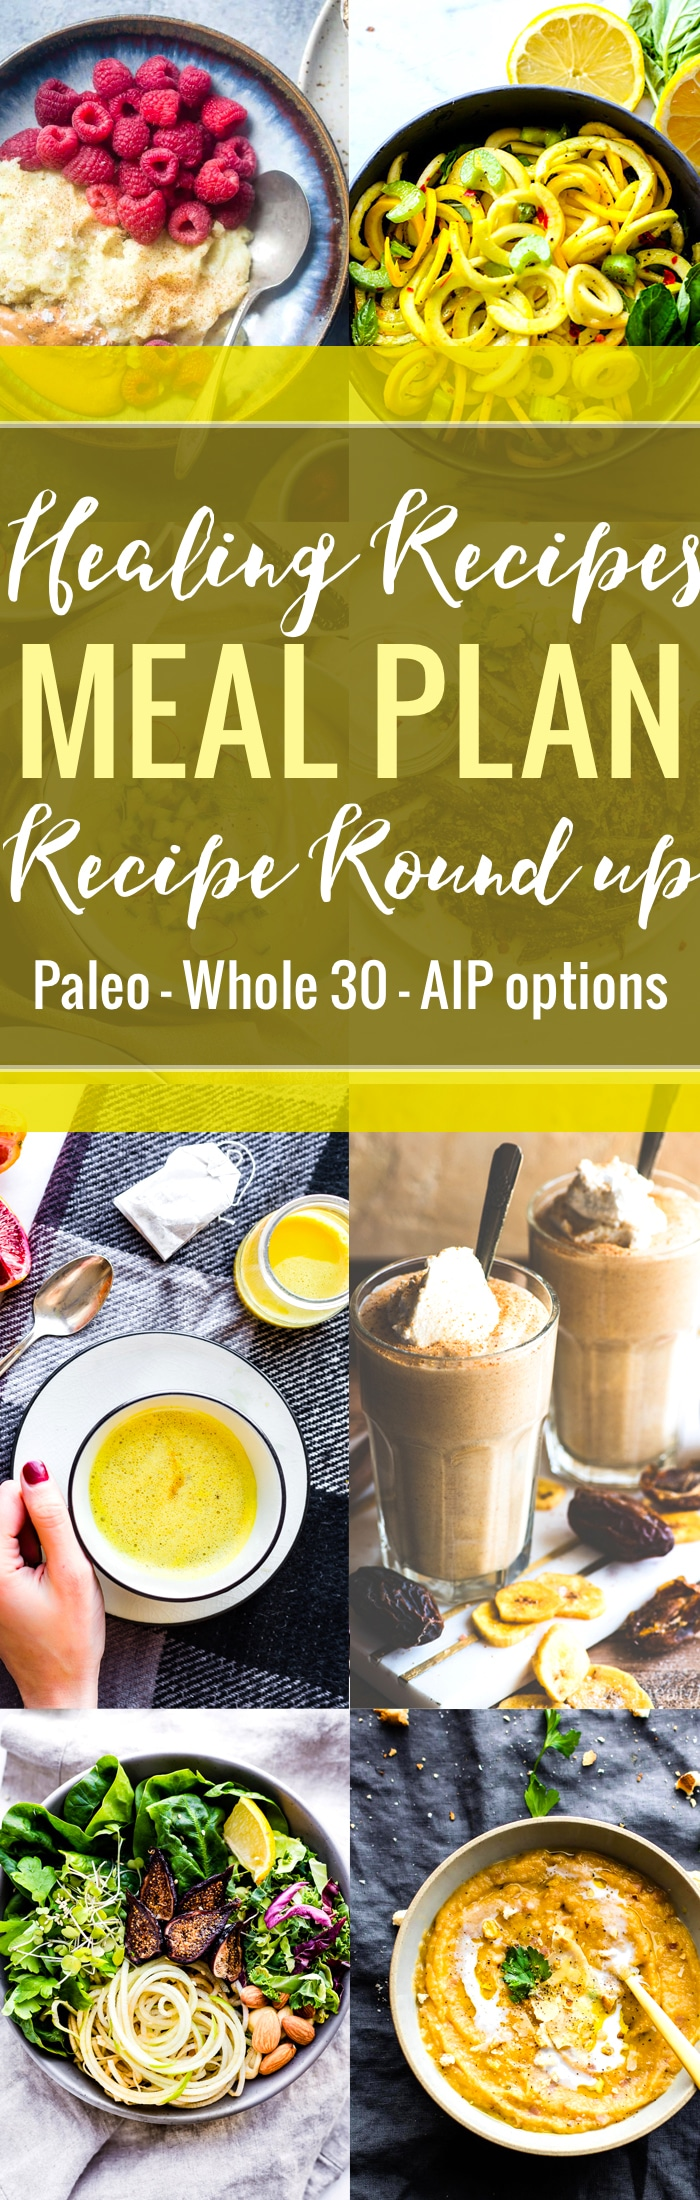 Delicious HEALING RECIPES to create your nourishing MEAL PLAN. This recipe round up is full of AIP friendly, Paleo anti-inflammatory, and/or Whole 30 compliant recipes for breakfast, lunch, dinner, and more!